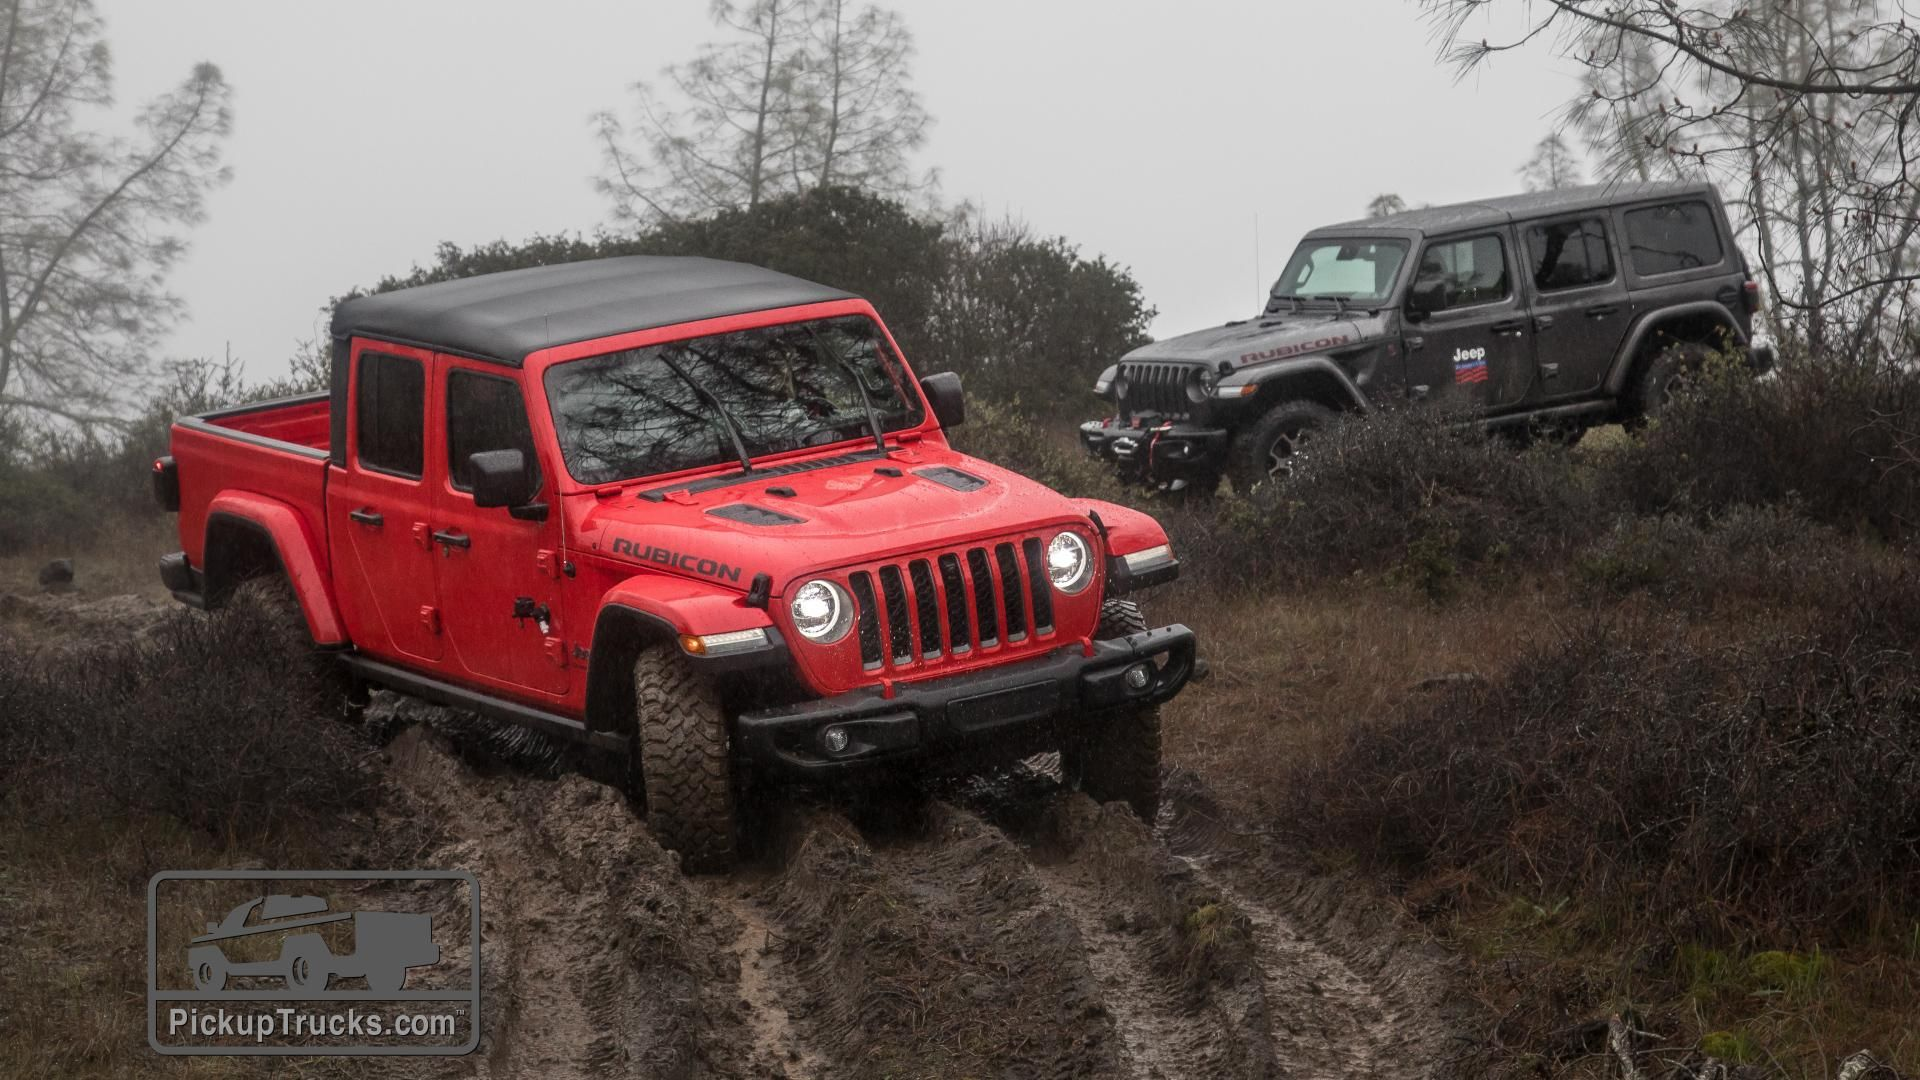 Ride Along With Us For Mud Flinging Fun In The 2020 Jeep Gladiator